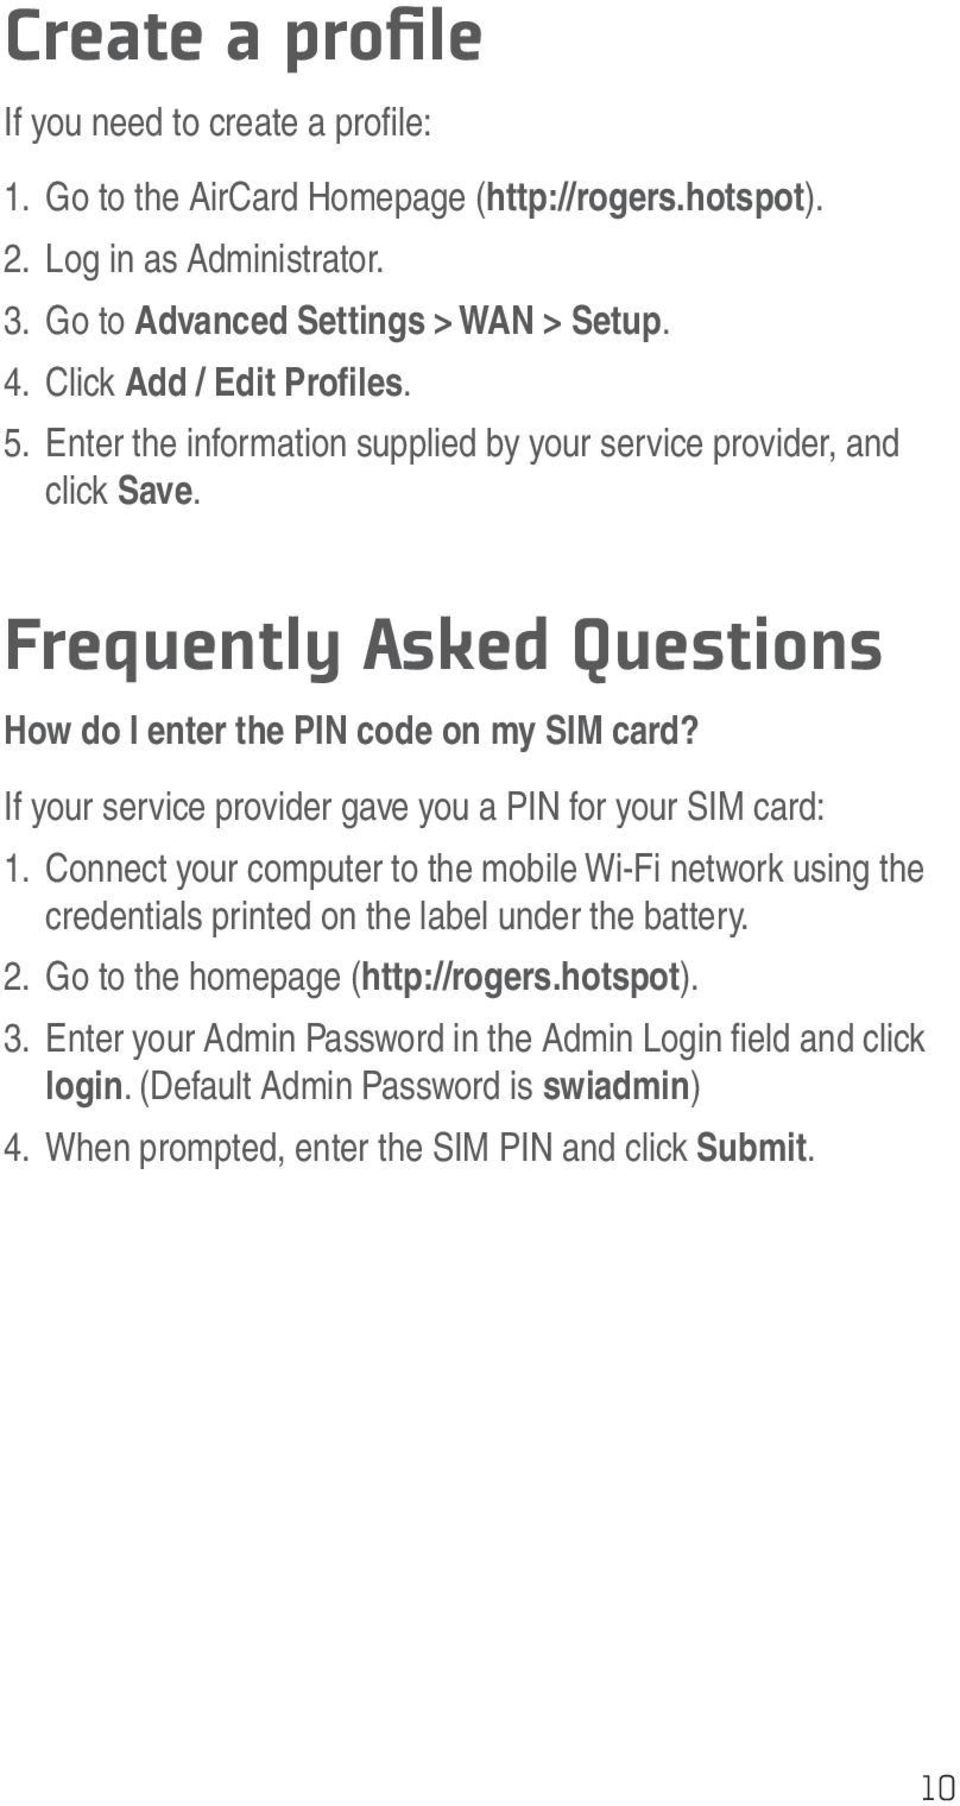 If your service provider gave you a PIN for your SIM card: 1. Connect your computer to the mobile Wi-Fi network using the credentials printed on the label under the battery. 2.